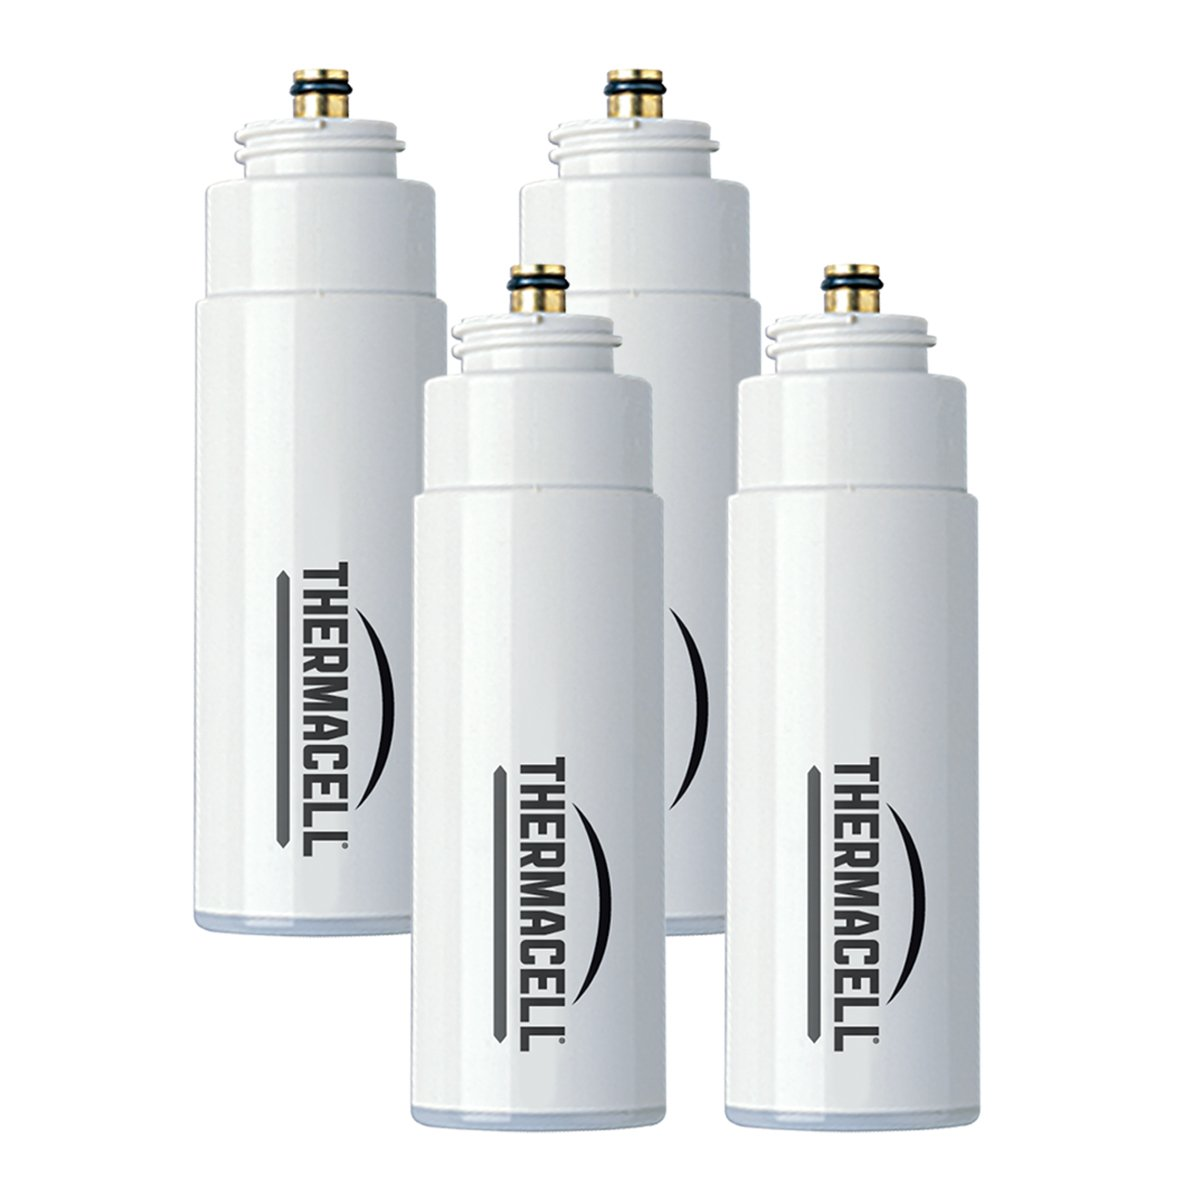 ThermacellC-4 FuelCartridge Refill, 4-Pack by Thermacell (Image #2)